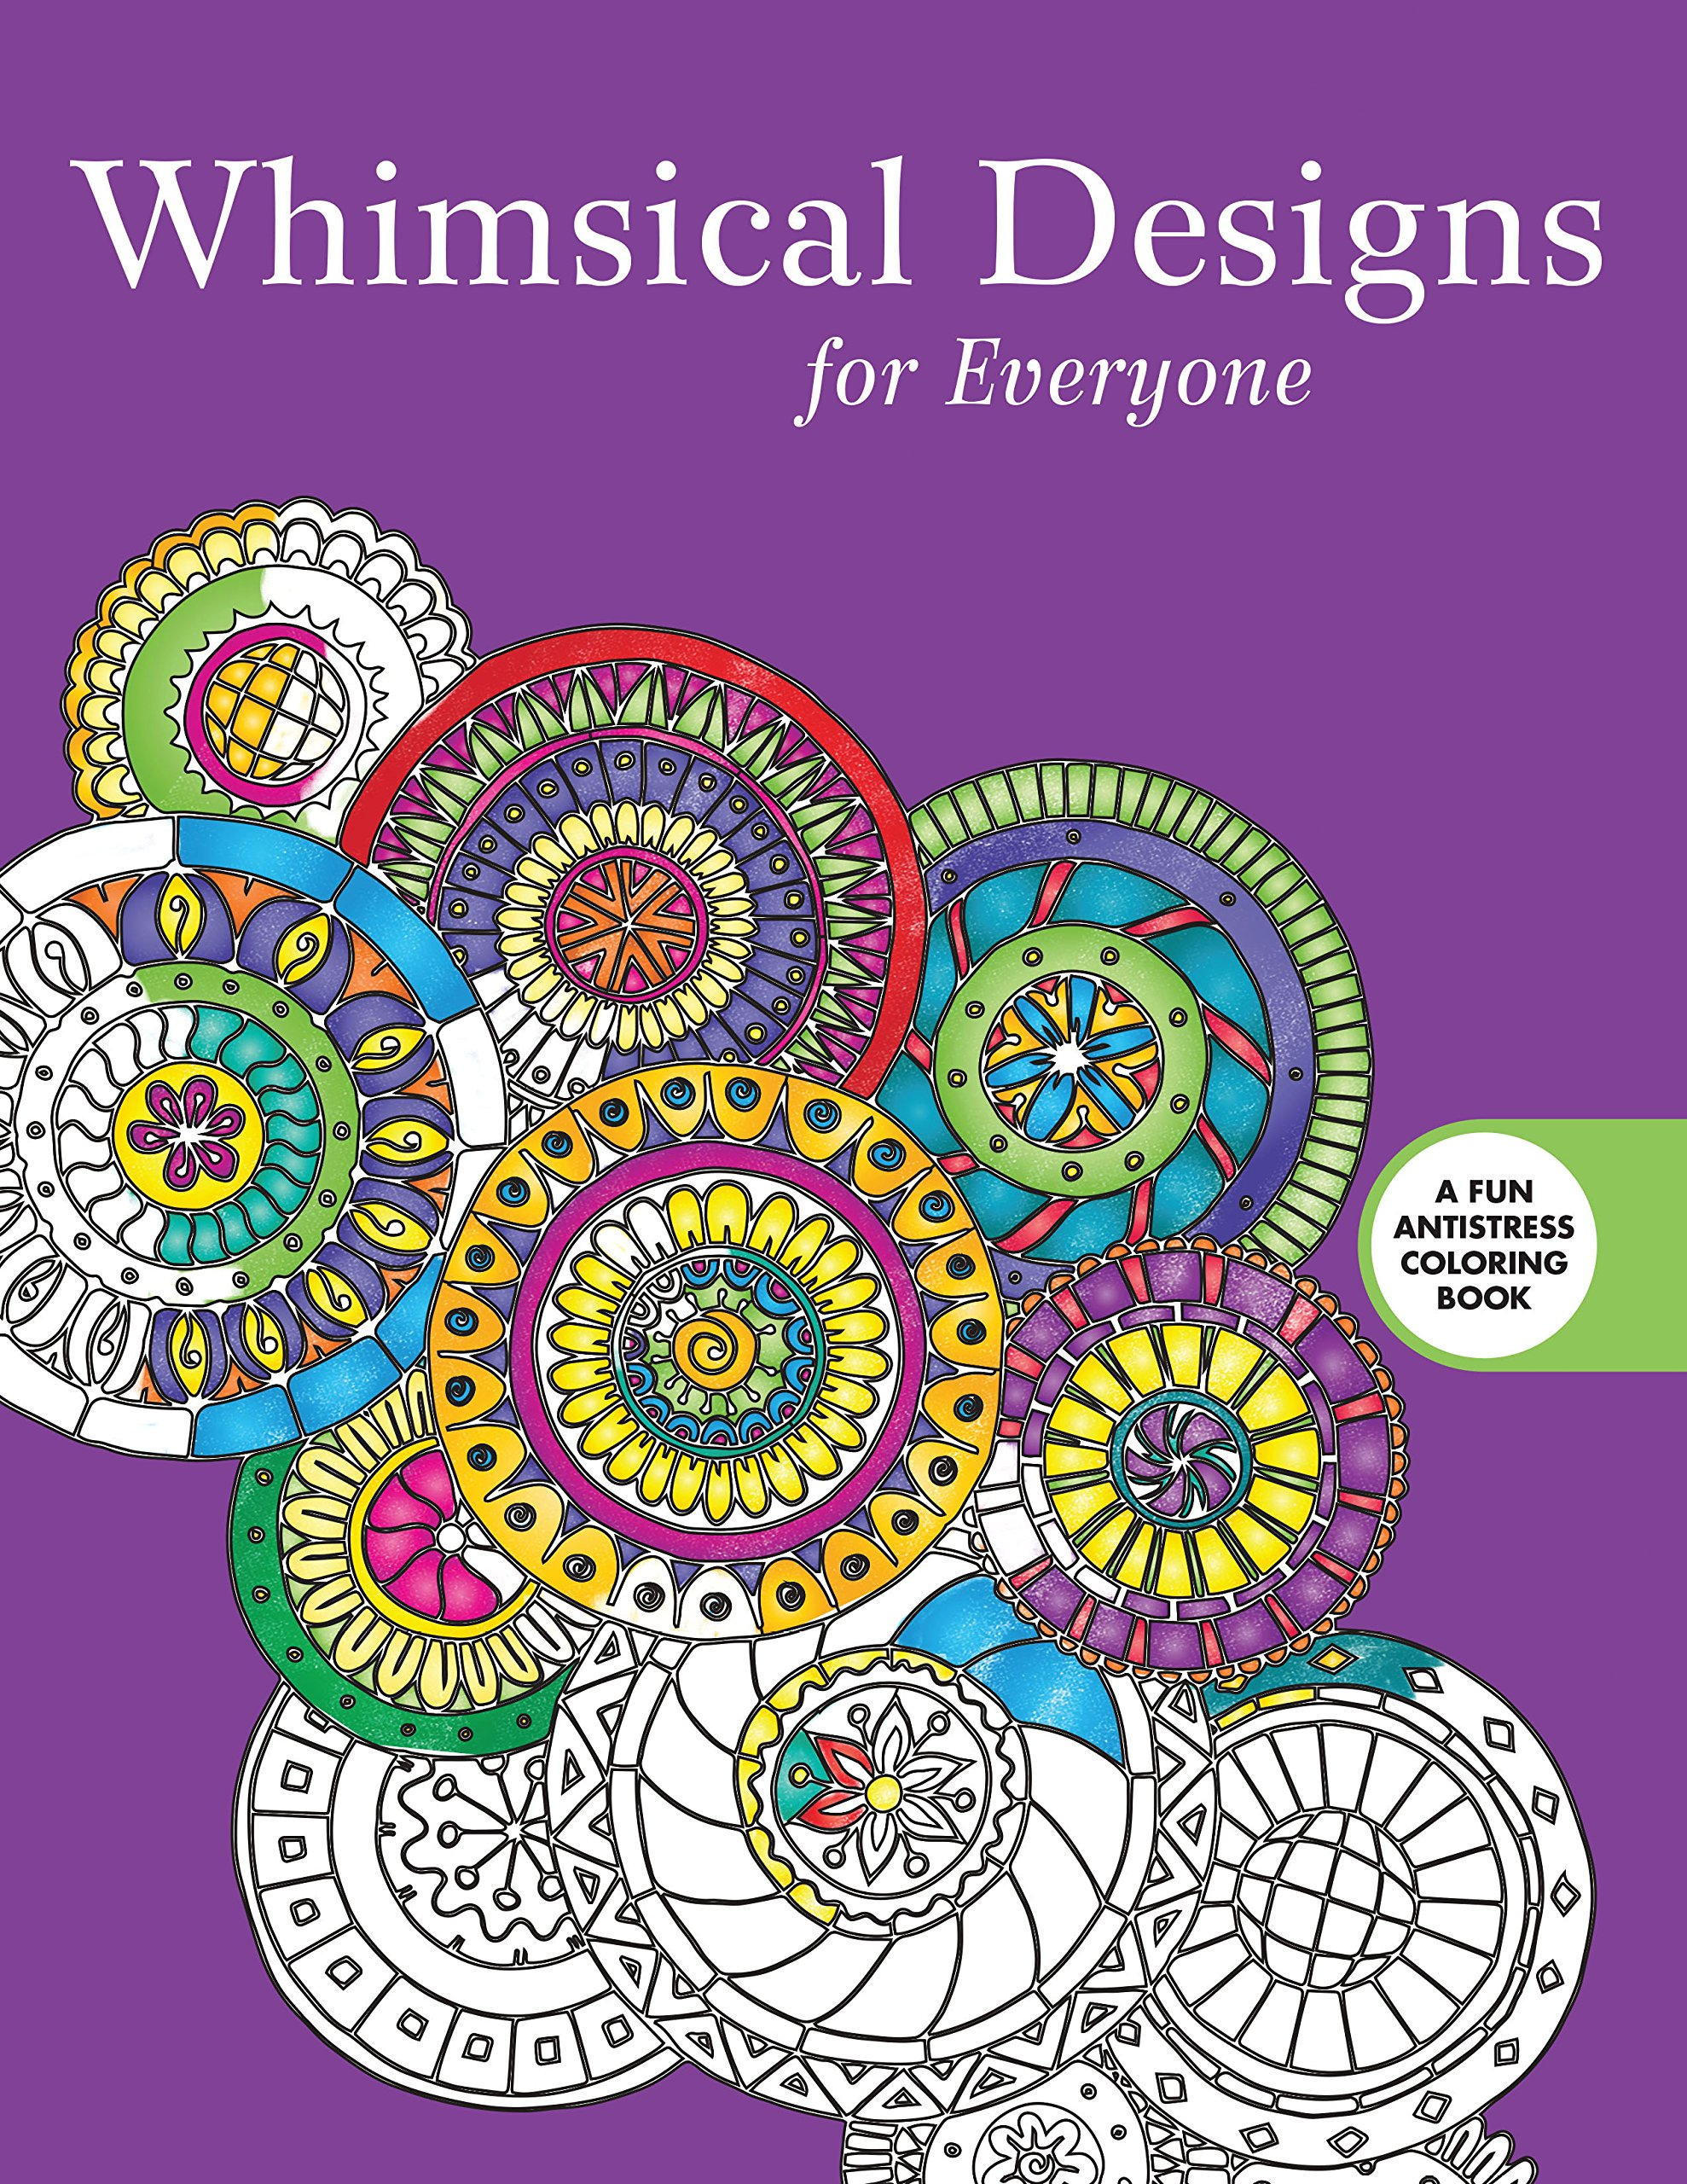 Whimsical designs coloring book - Amazon Com Whimsical Designs Coloring For Everyone Creative Stress Relieving Adult Coloring Book Series 9781510704596 Skyhorse Publishing Books